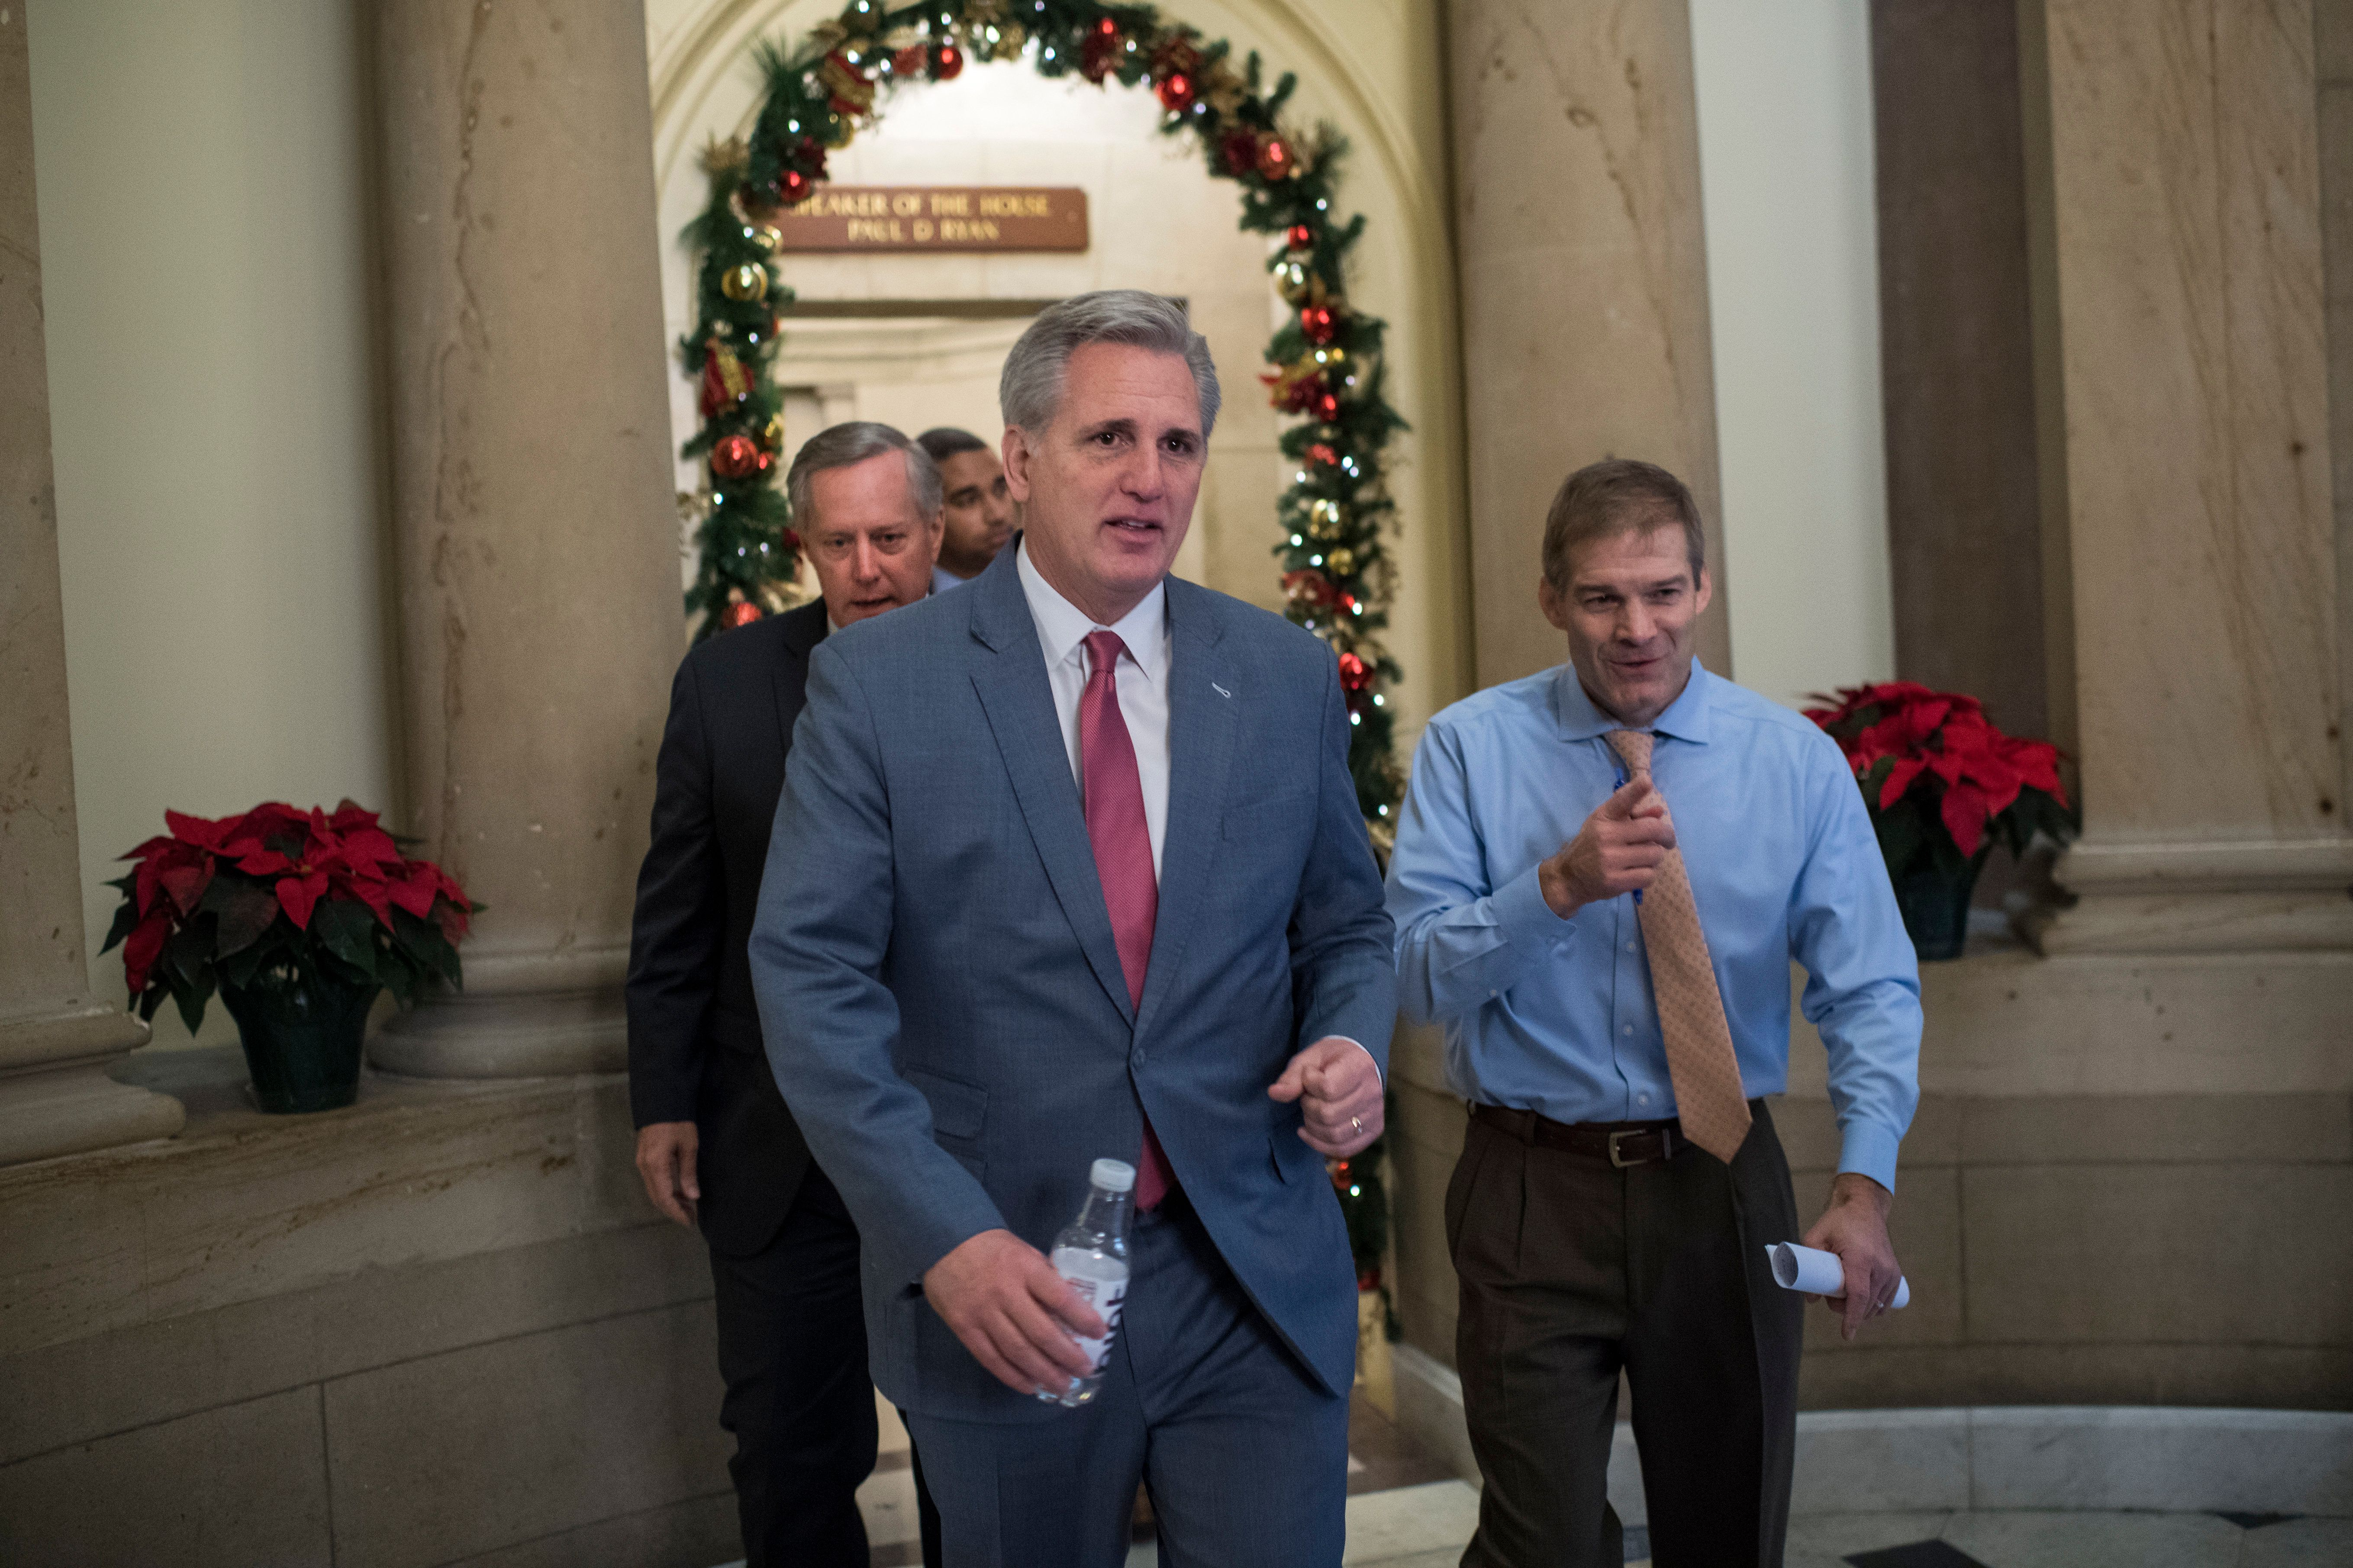 UNITED STATES - DECEMBER 06: From left, Rep. Mark Meadows, R-N.C., House Majority Leader Kevin McCarthy, R-Calif., and Rep. Jim Jordan, R-Ohio, leave a meeting in the Speaker's office in the Capitol on December 6, 2017. (Photo By Tom Williams/CQ Roll Call)